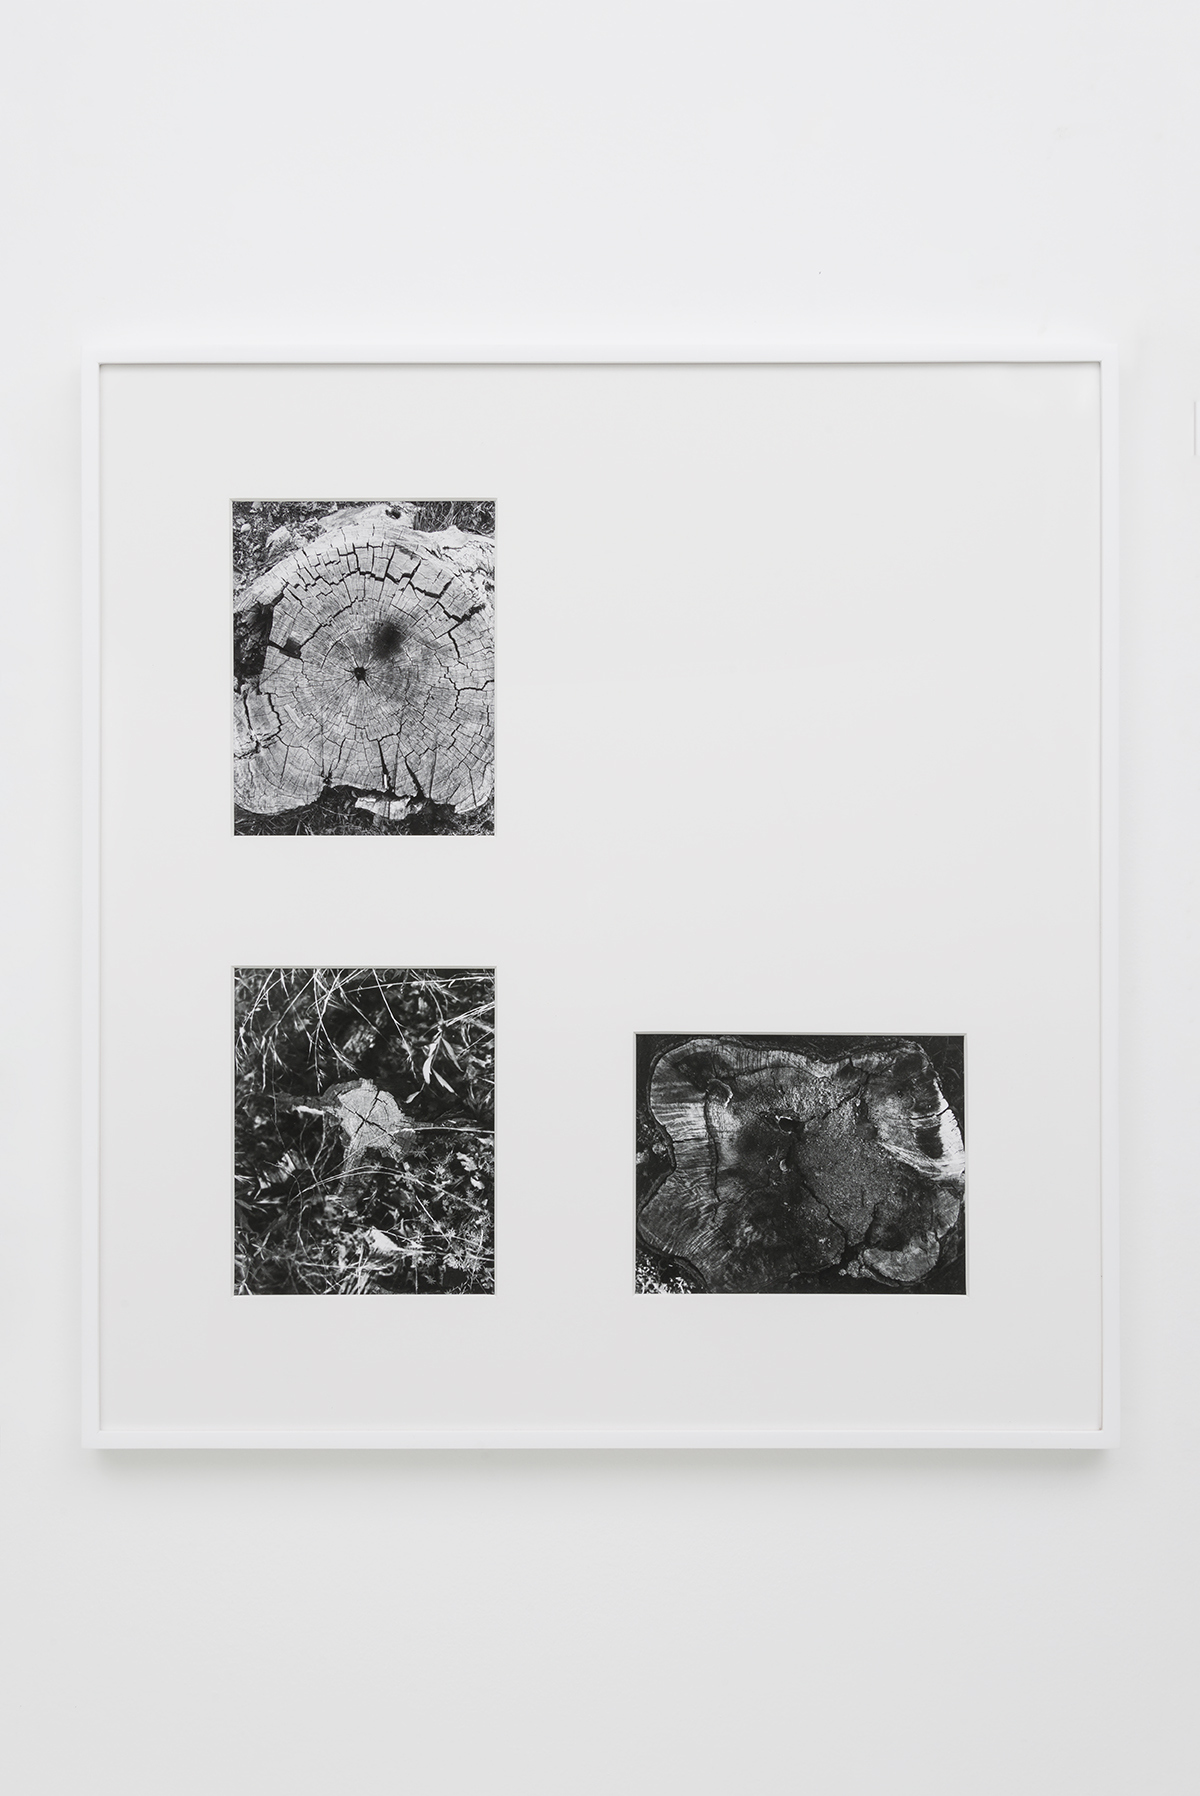 "Devon Oder - Stump Suite - 2016 - 3 Archival Inkjet Prints - 8 x 10"" Photos, 30 x 32"" Matted and Framed"